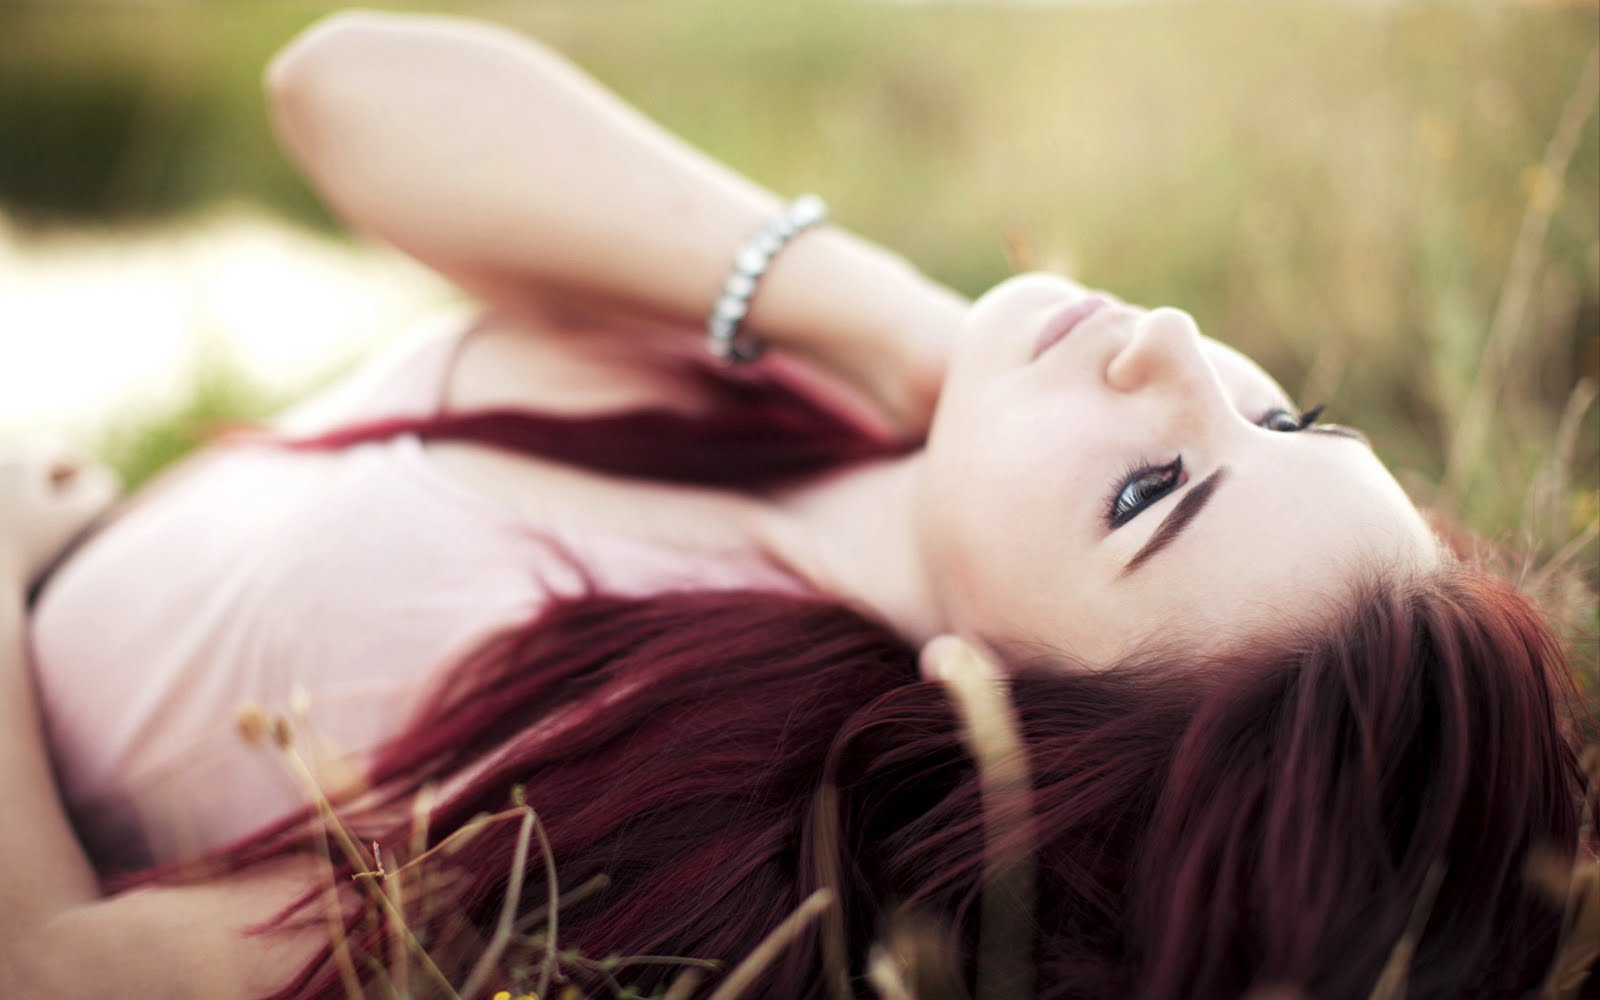 http://4.bp.blogspot.com/-TDnfA79gg_w/T92X4_kJaOI/AAAAAAAAAAs/35mtd9qwHCc/s1600/Girl+In+The+Grass+Red+Hair+Look+Glamour+HD+Wallpaper+-+LoveWallpapers4u.Blogspot.Com.jpg